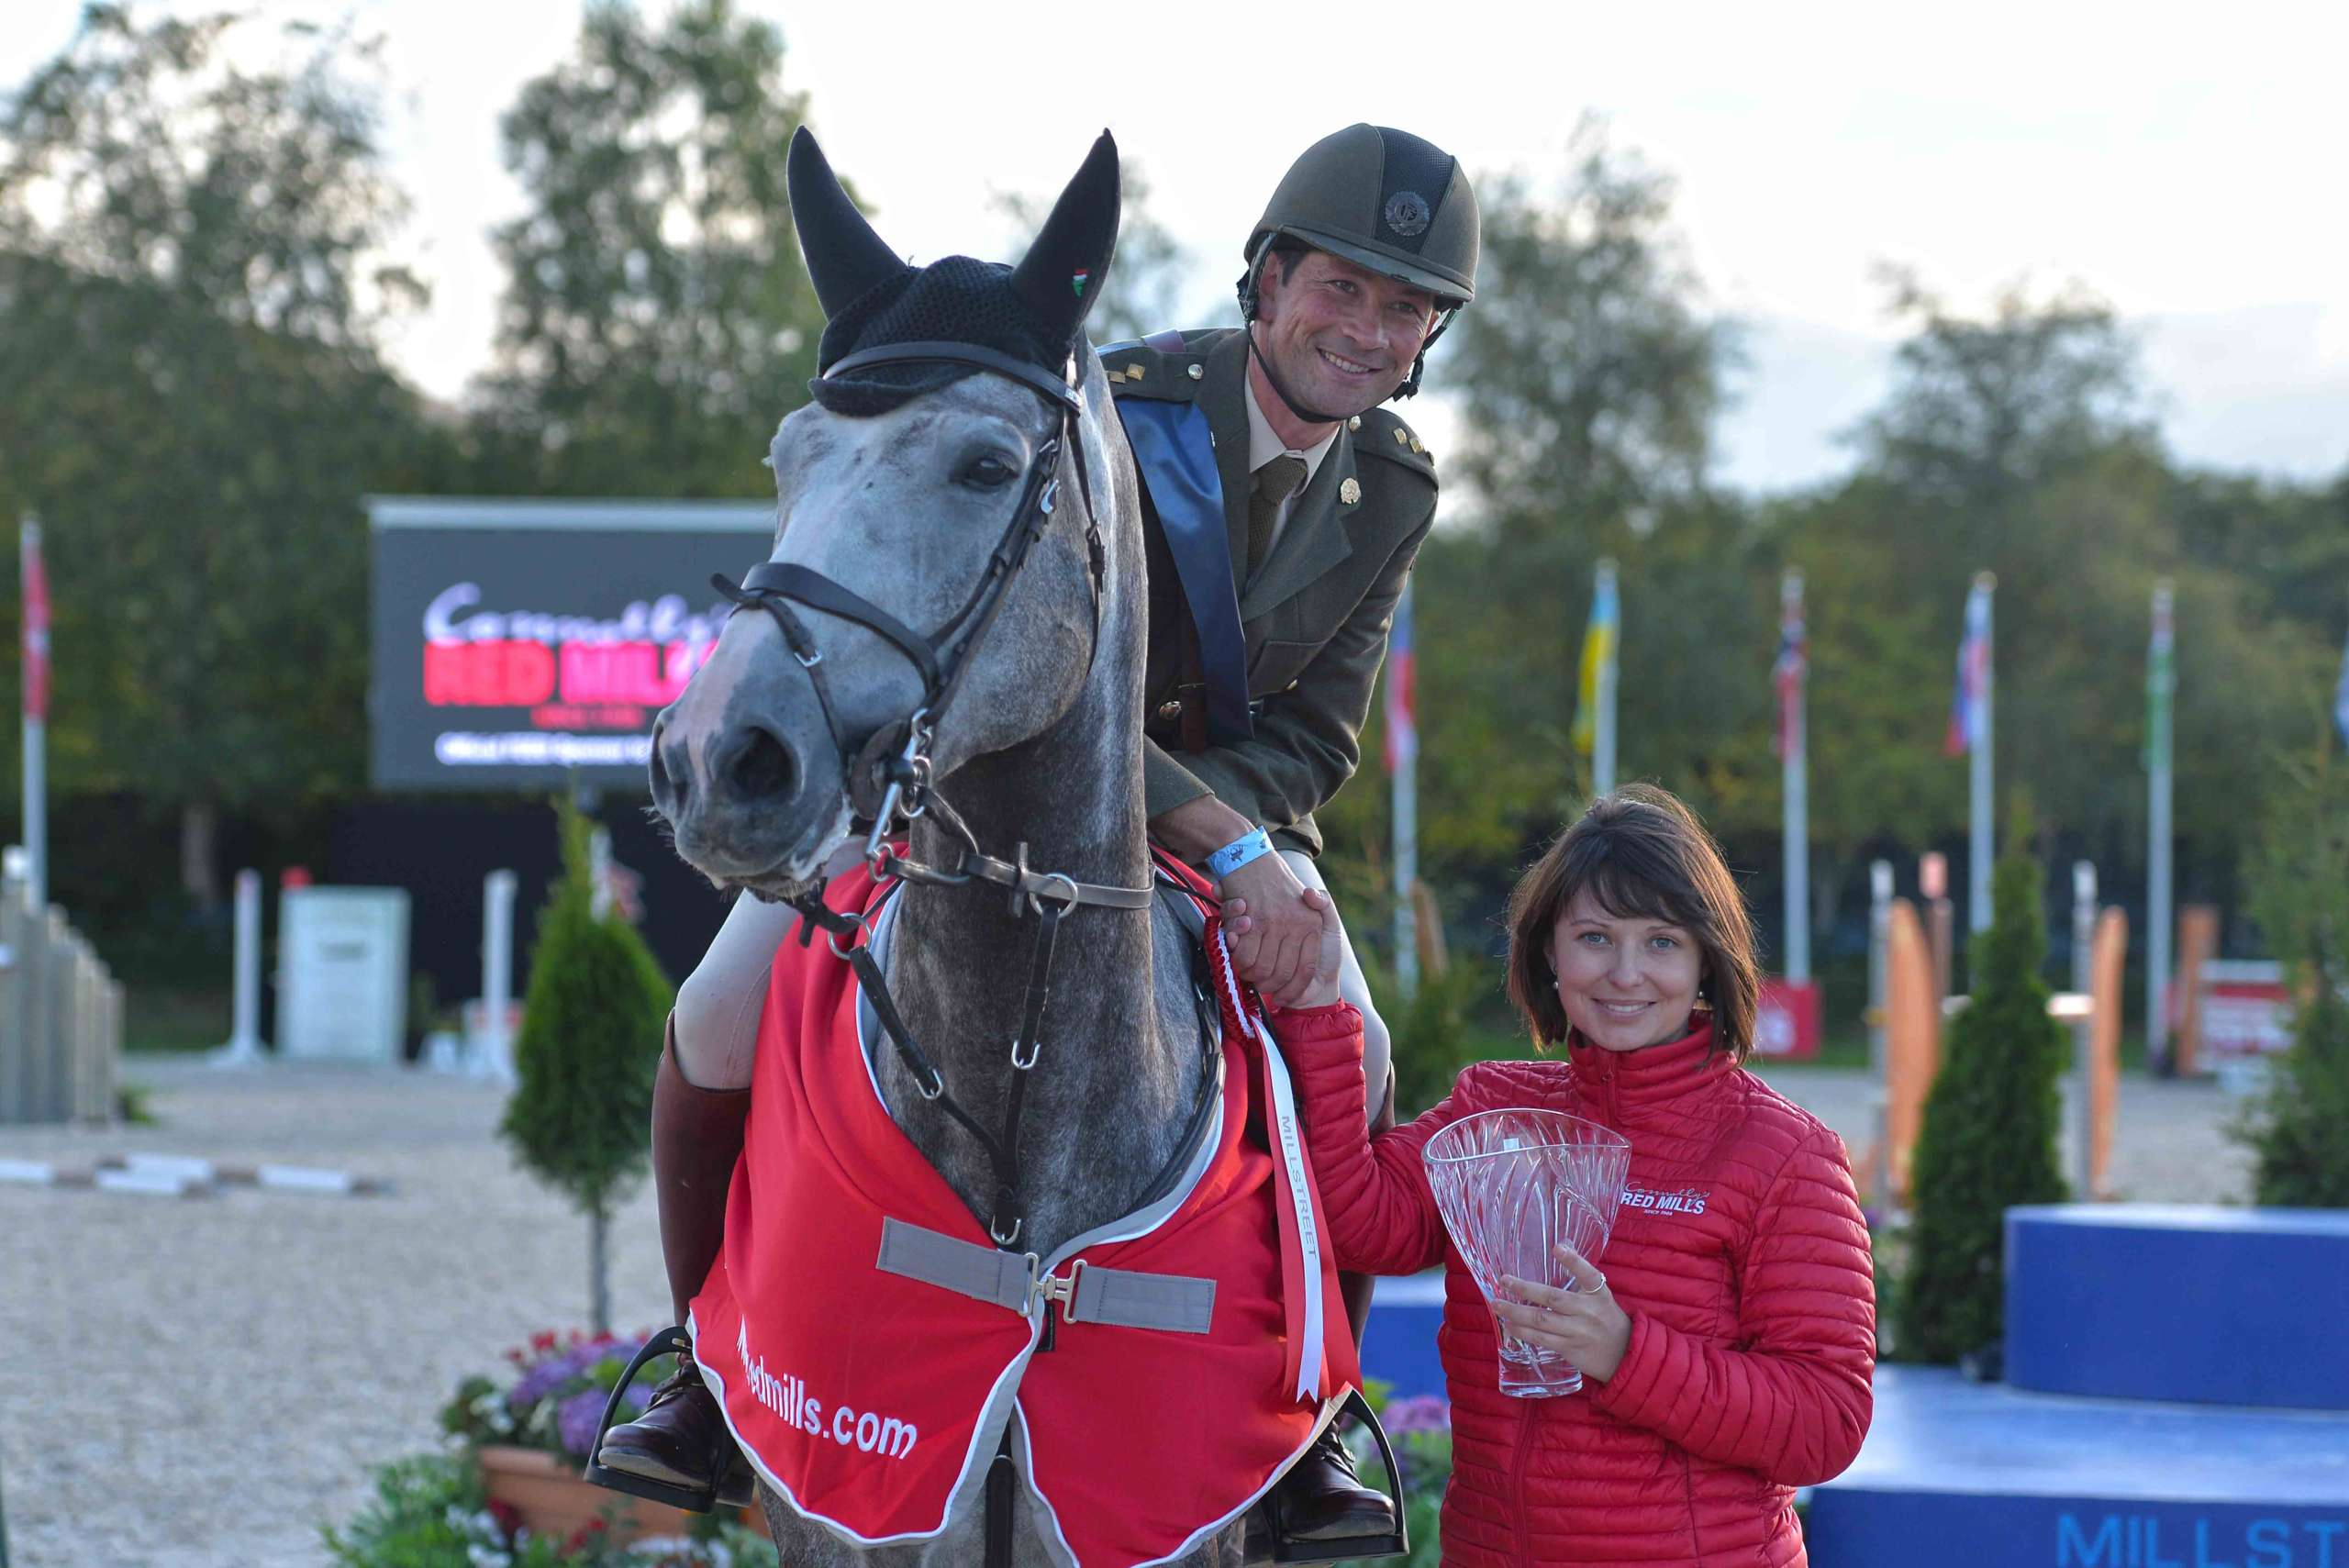 Connolly's RED MILLS to present Millstreet CICO3* FEI Eventing Nations Cup